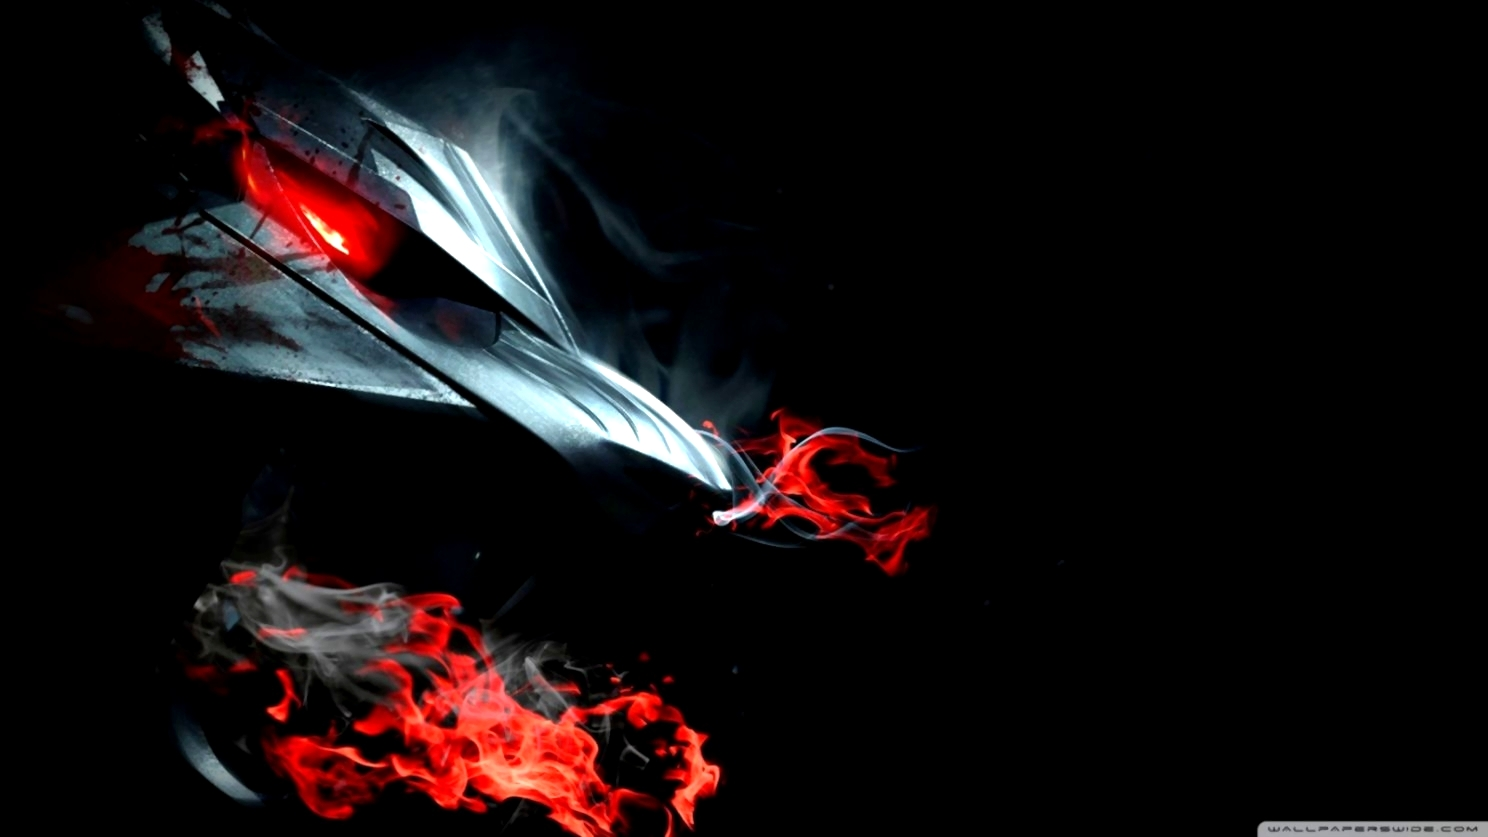 The Red Dragon Wallpaper